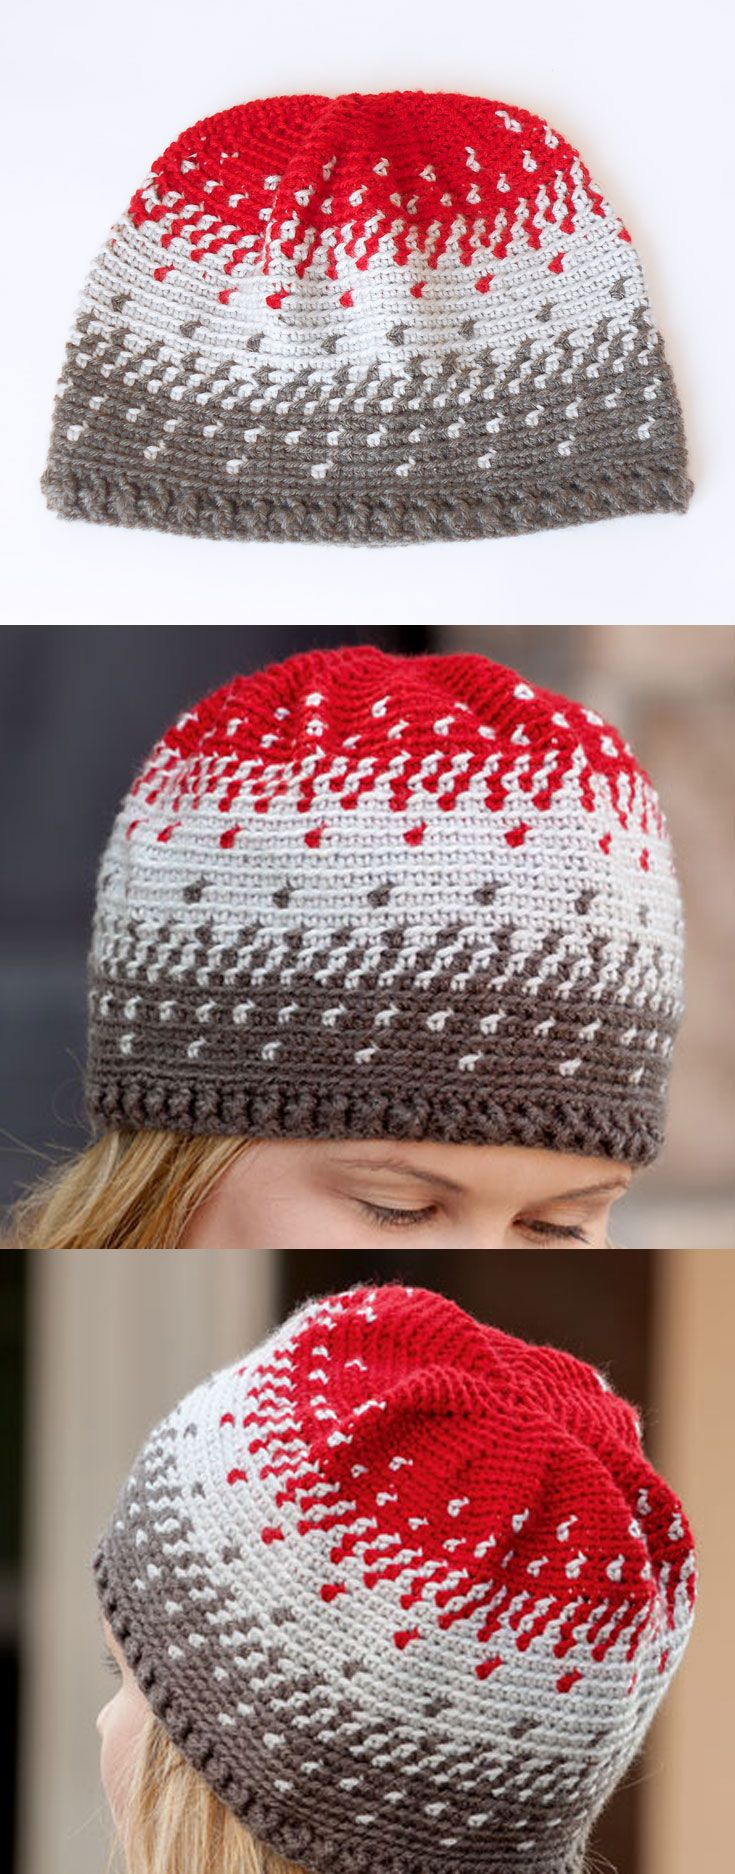 Blending colors hat in 3 sizes (man, woman and teen), in Learn to Tapestry Crochet book, that includes basic steps on how to carry and wrap yarn, change colors, step-by-step photos, written instructions and charts. A great learn-to book! Also included are 6 projects perfect for a beginner.